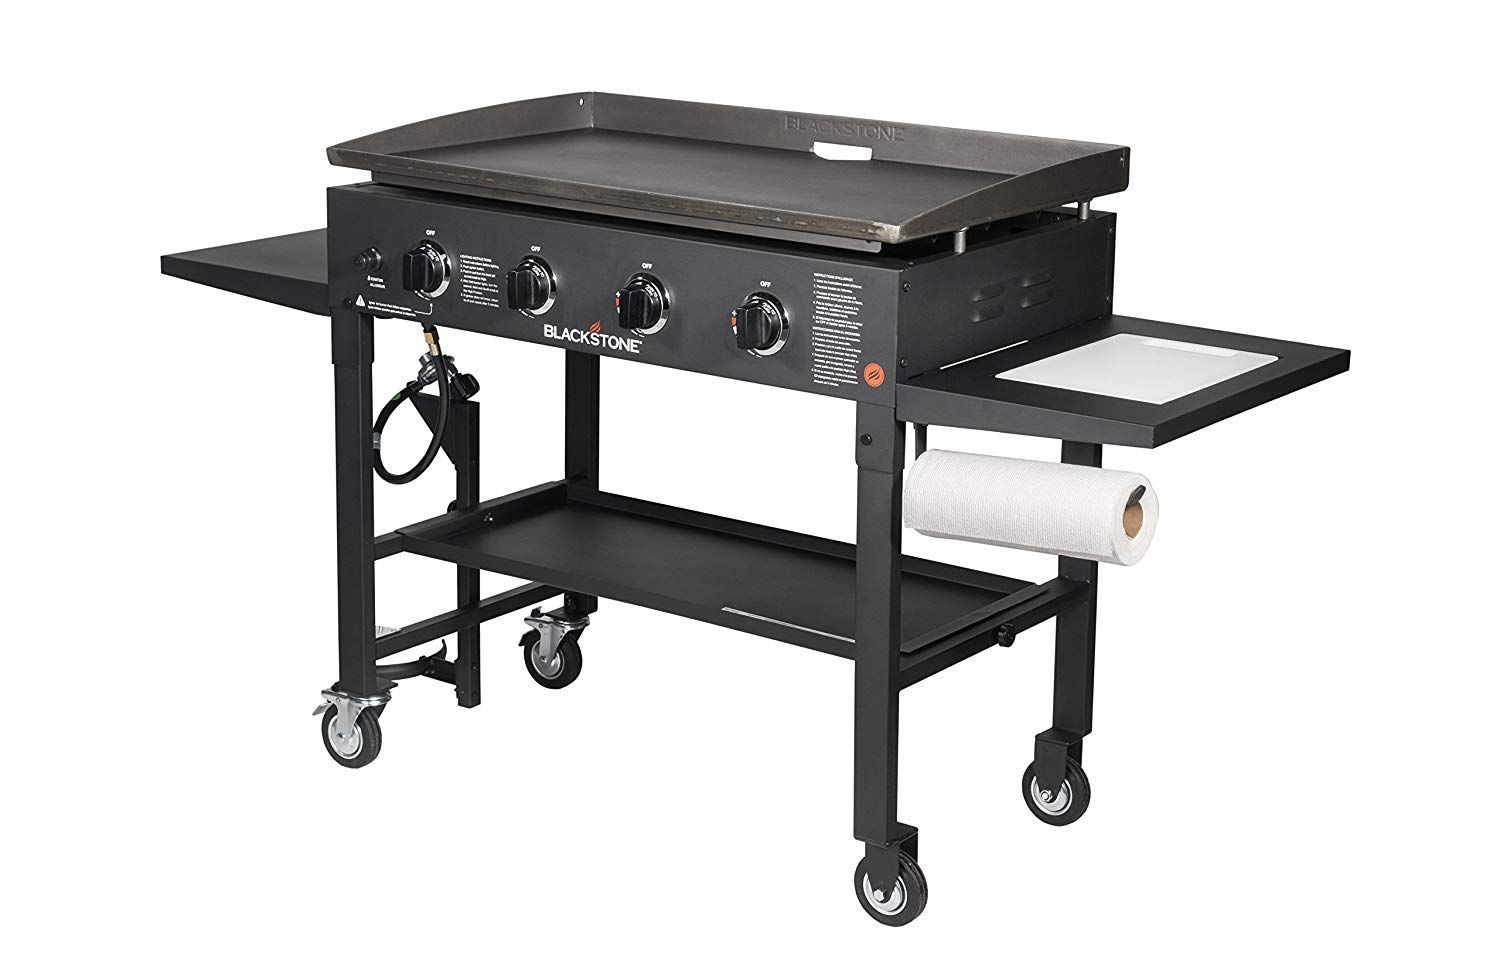 36 Griddle Cooking Station With Accessory Side Shelf Blackstone